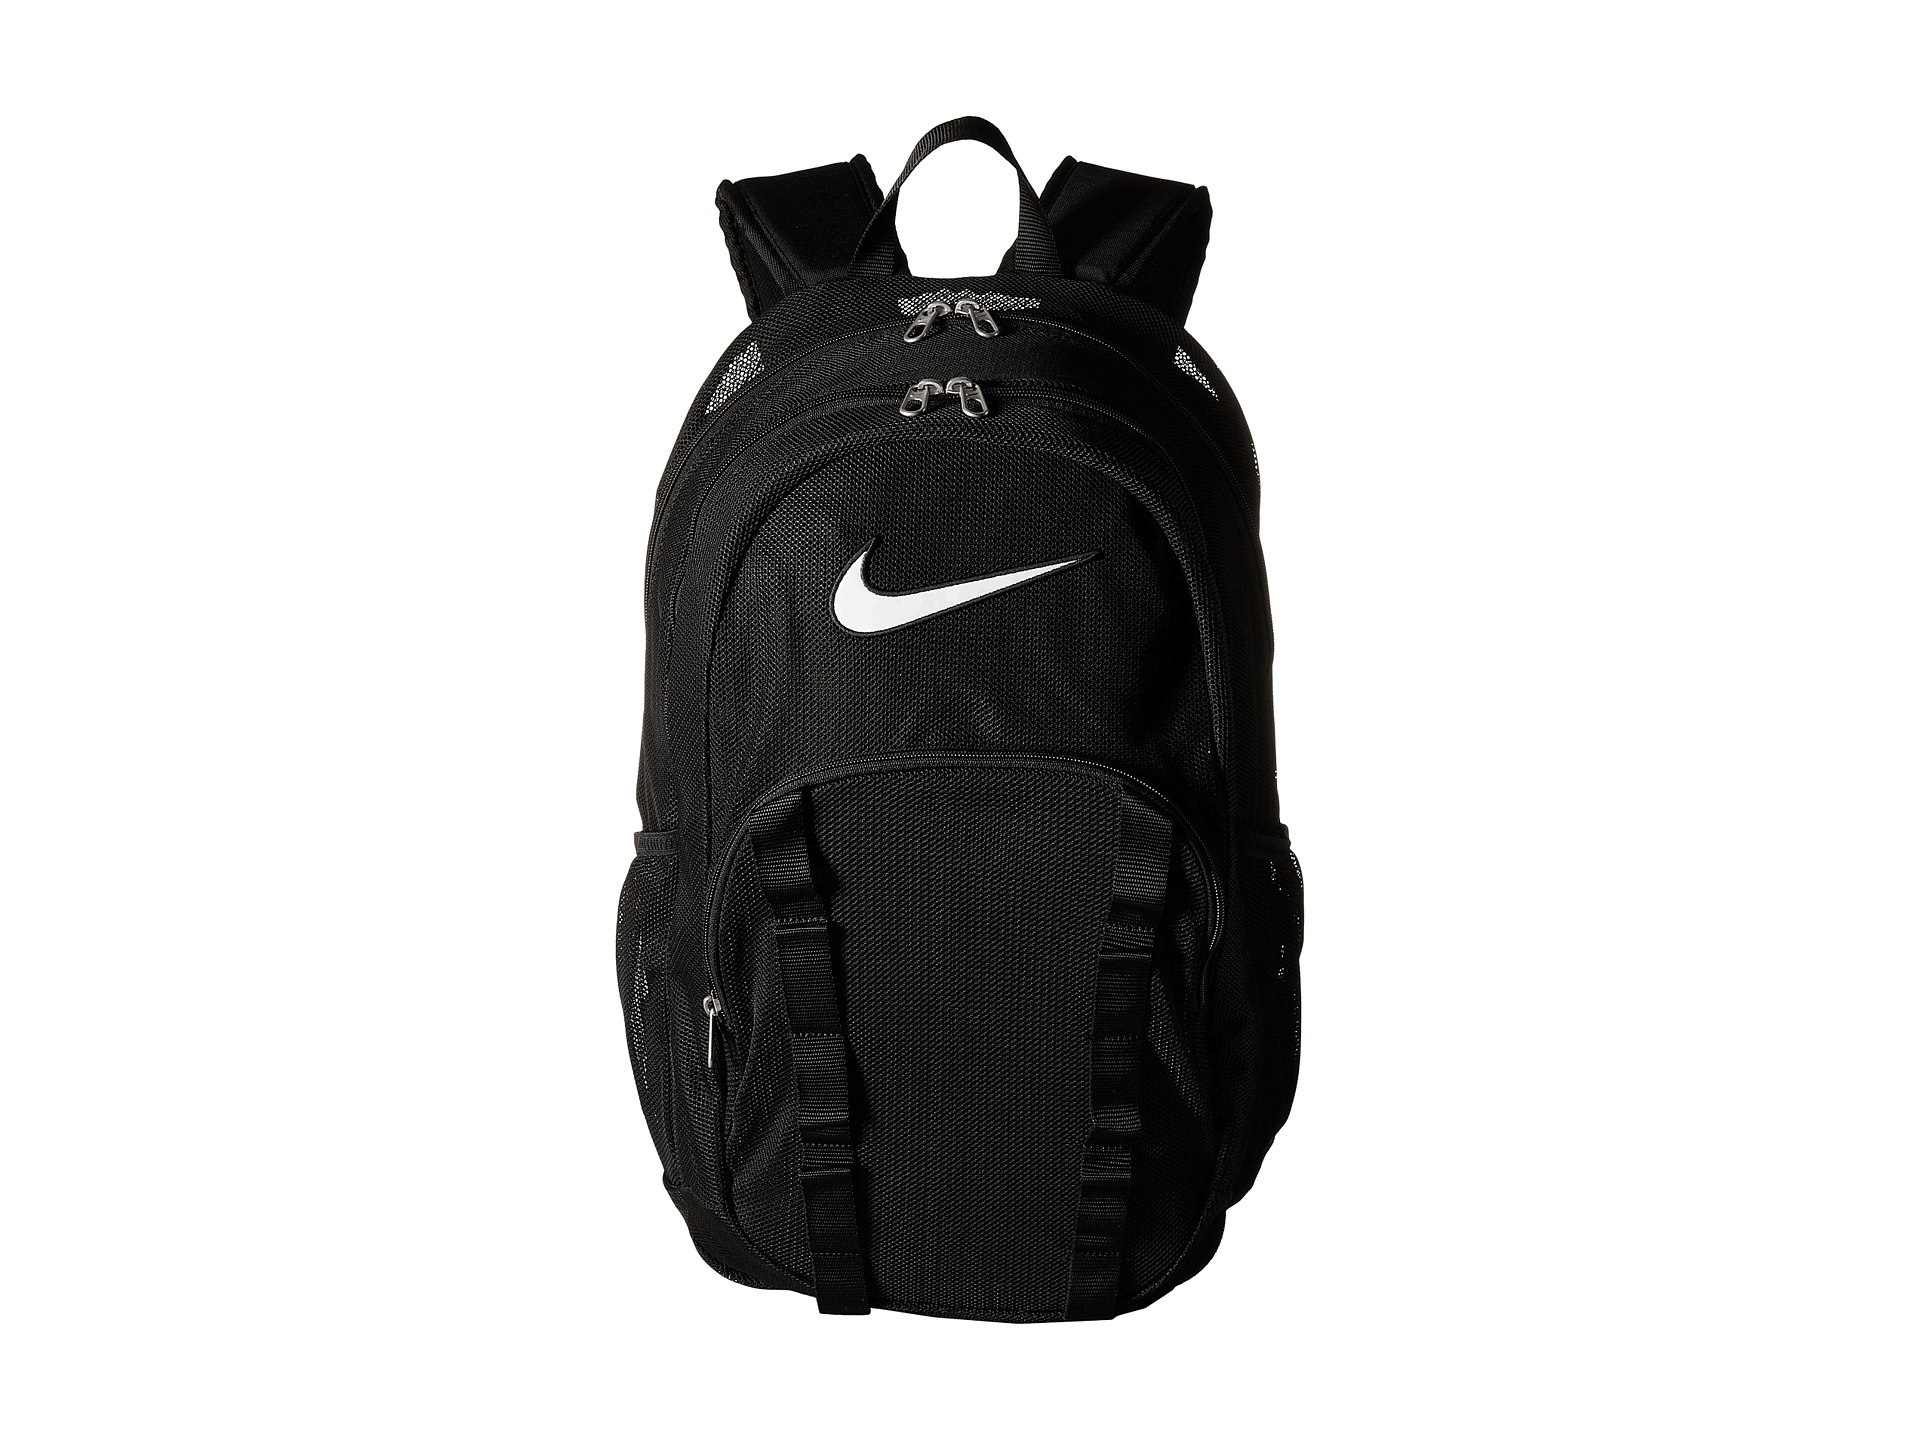 fd71babd140dc Nike Brasilia 7 Backpack Mesh Xl in Black - Lyst